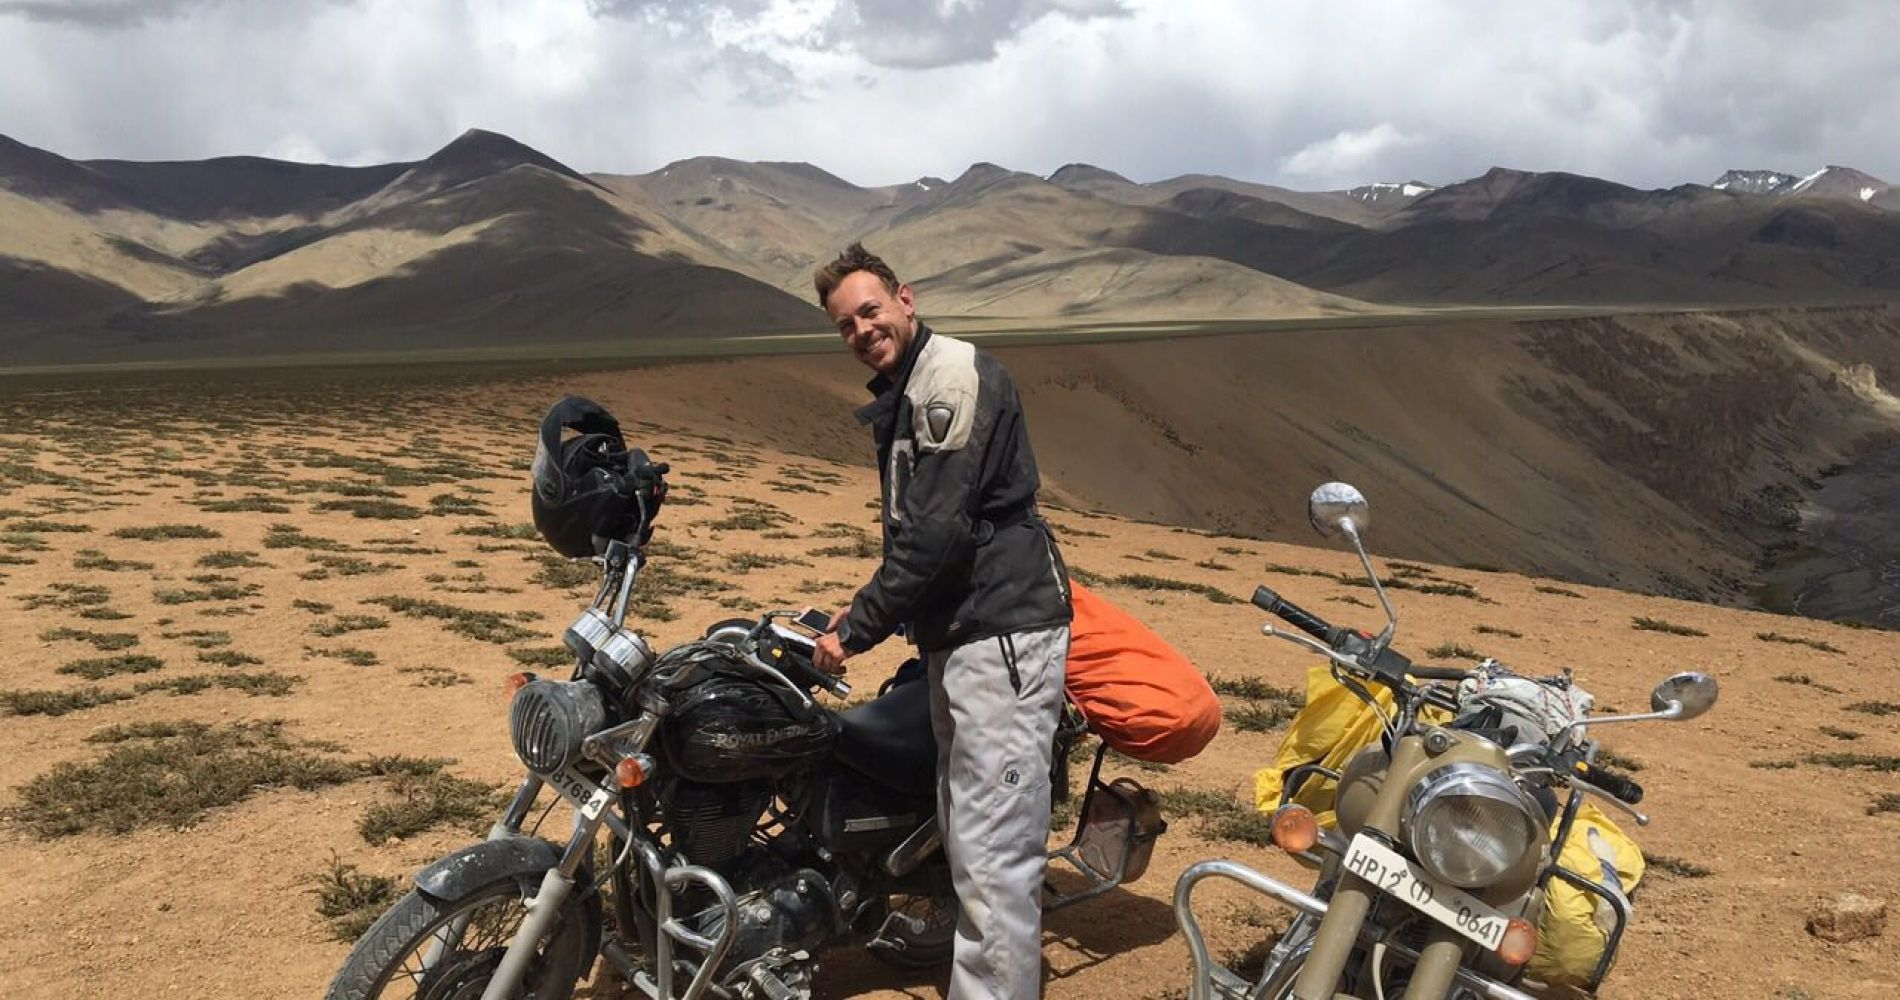 royal-enfield-motorbike-tour-himalayan-region-india-gift-bucket-list